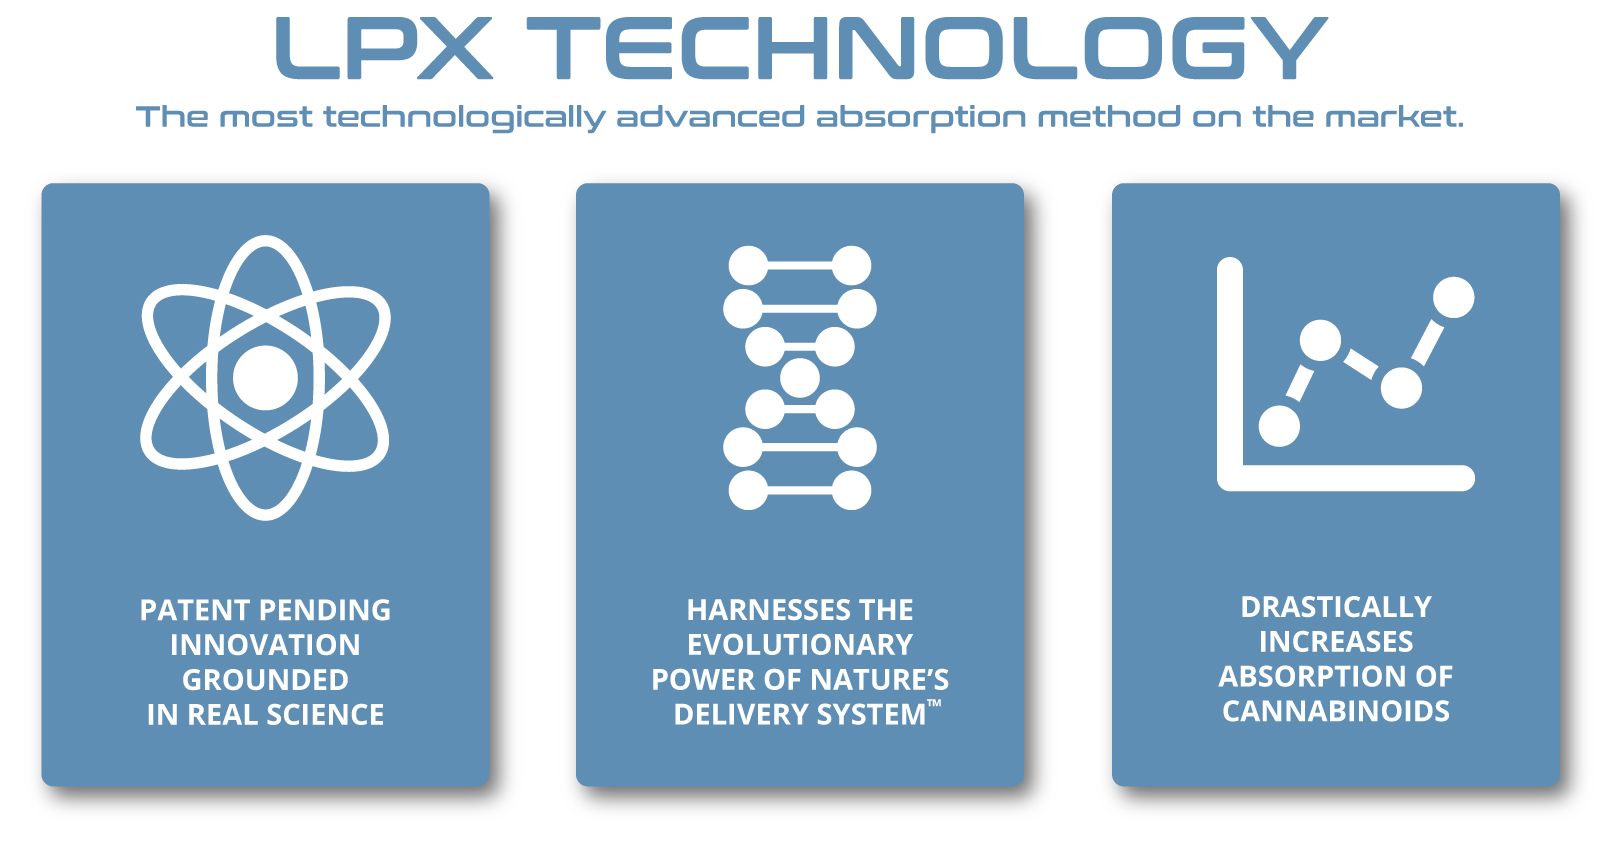 LPX-Technology-Advanced-CBD-Absorption